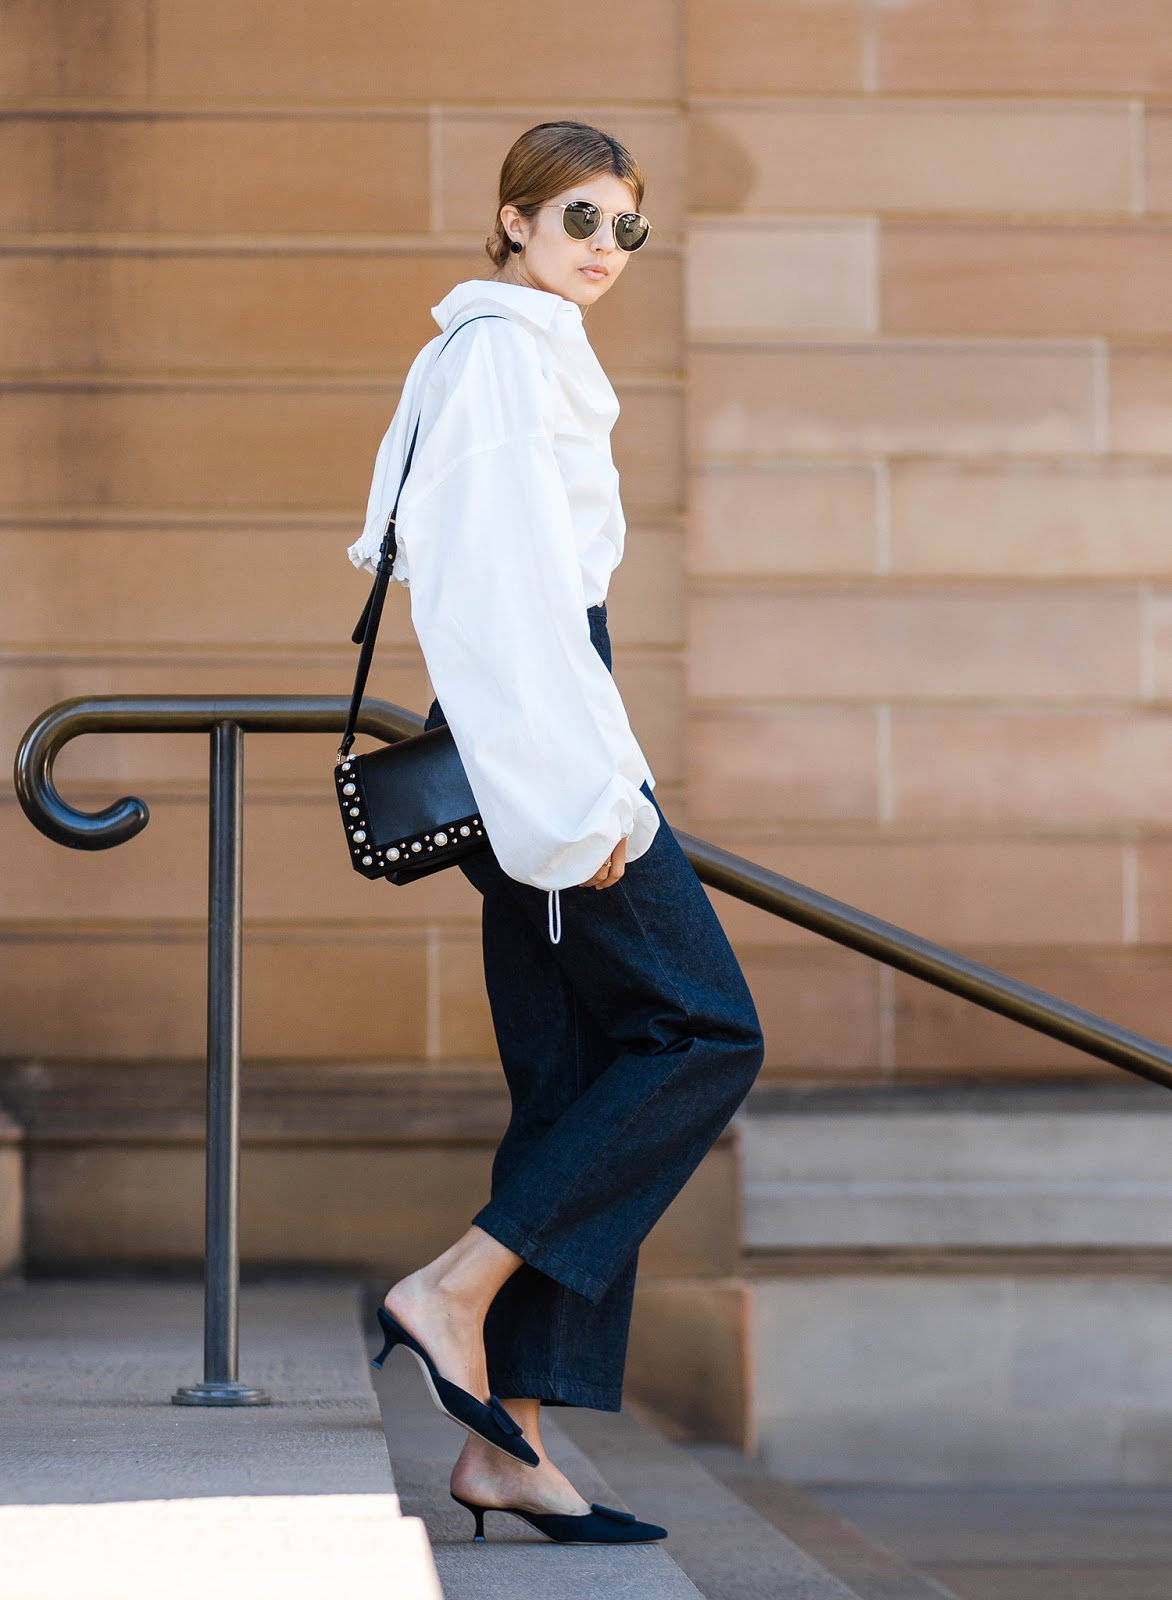 Fashion: A White Shirt and Jeans